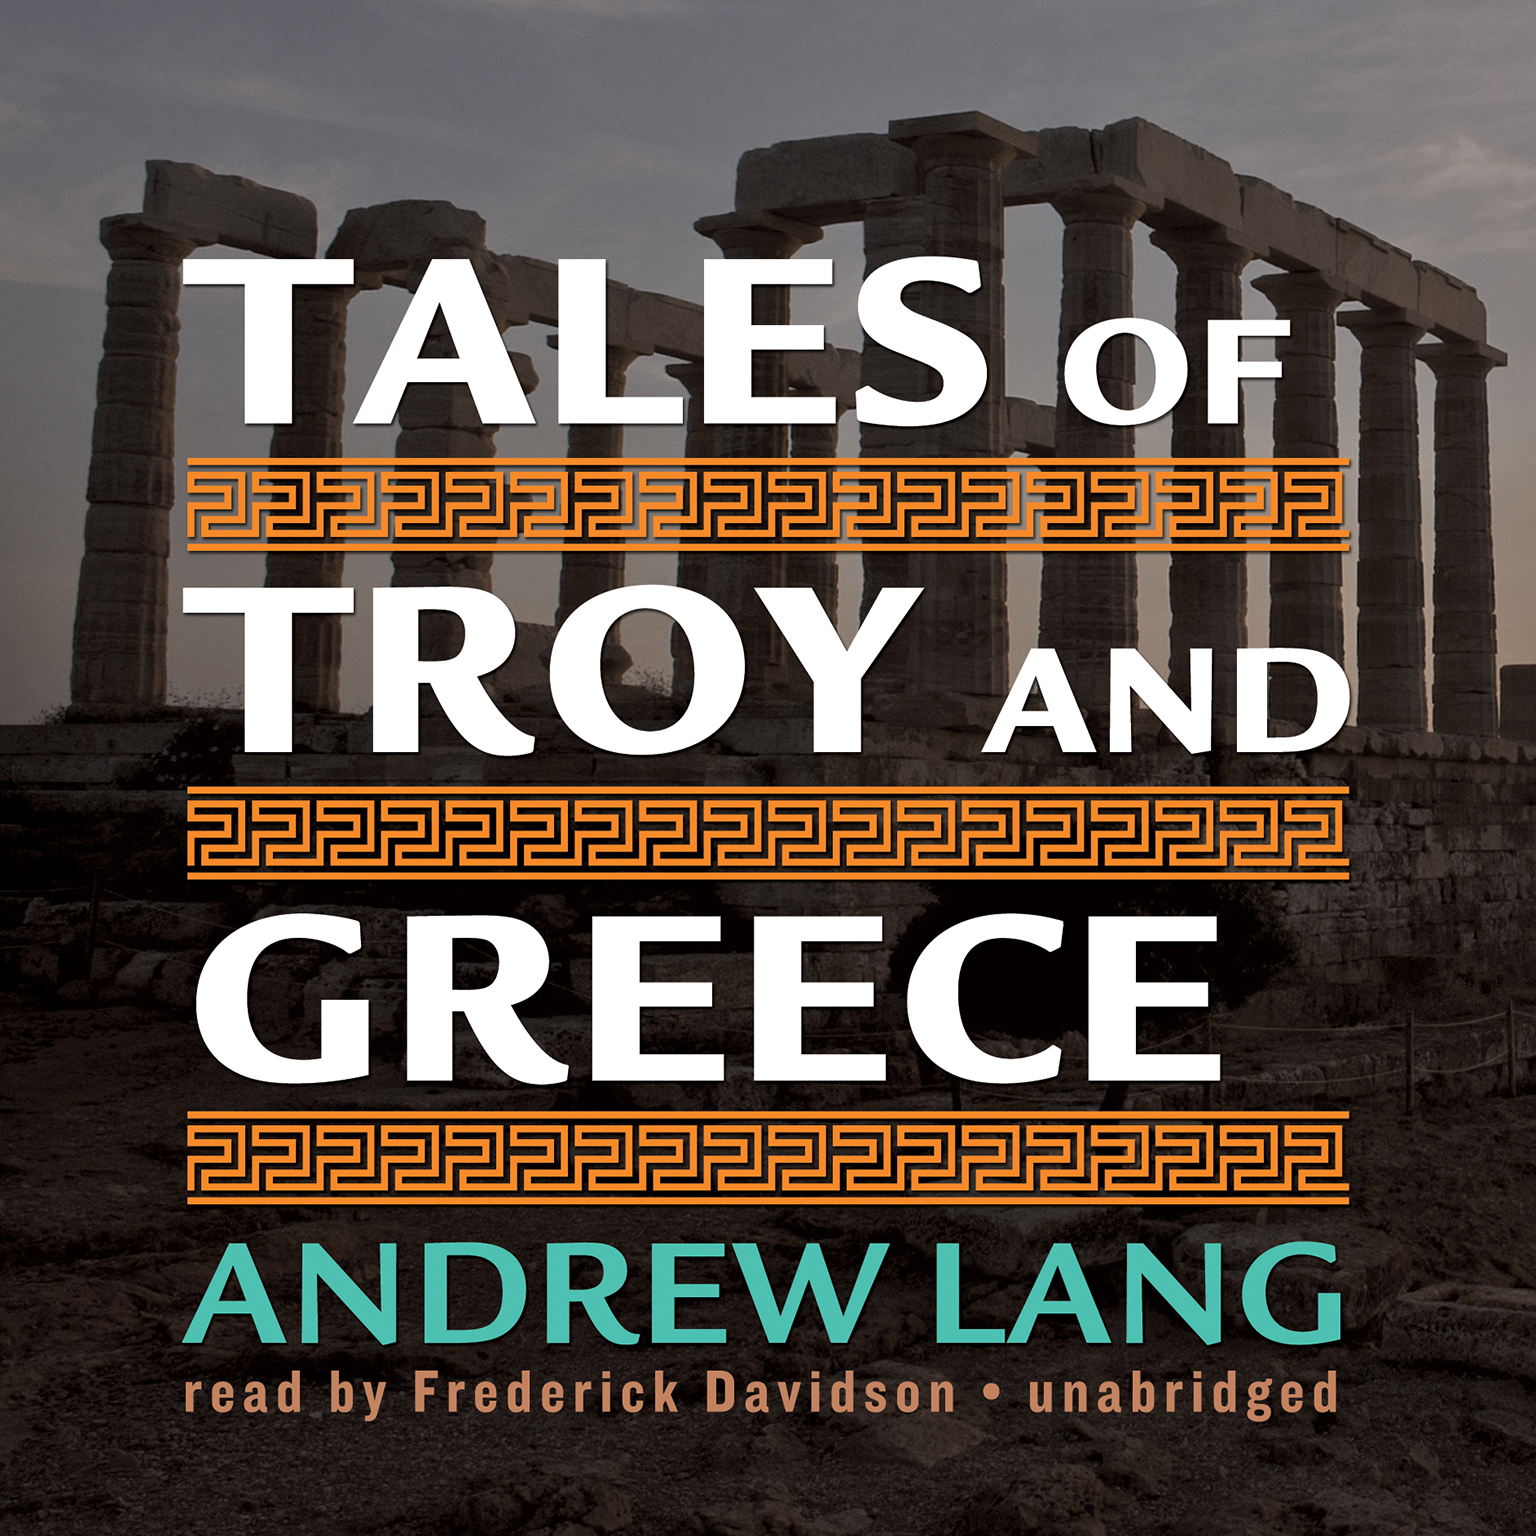 Printable Tales of Troy and Greece Audiobook Cover Art